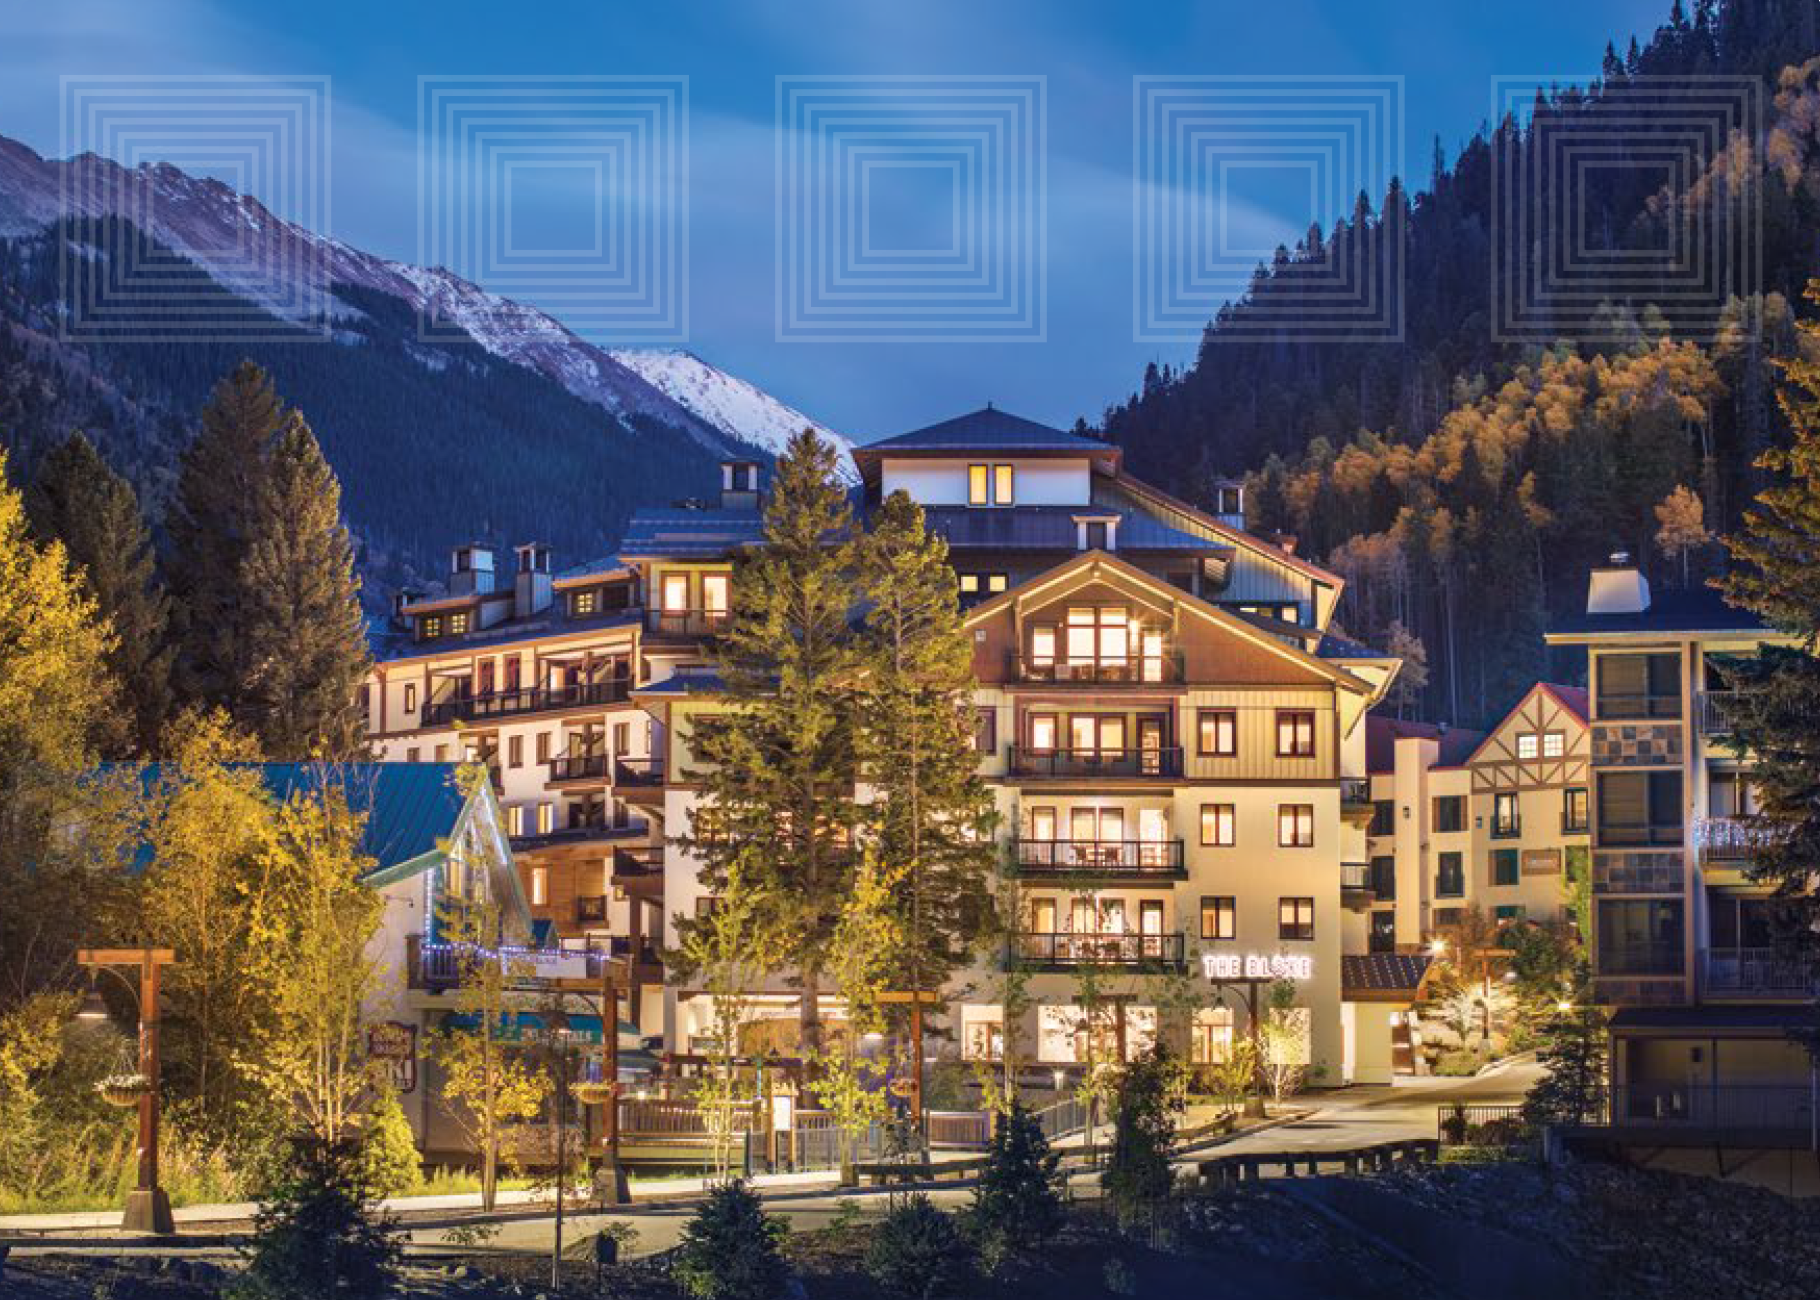 Read Up On The Latest Taos News - BREAKING GROUND, FEATURED RESIDENCE, EVENTS AND MORE